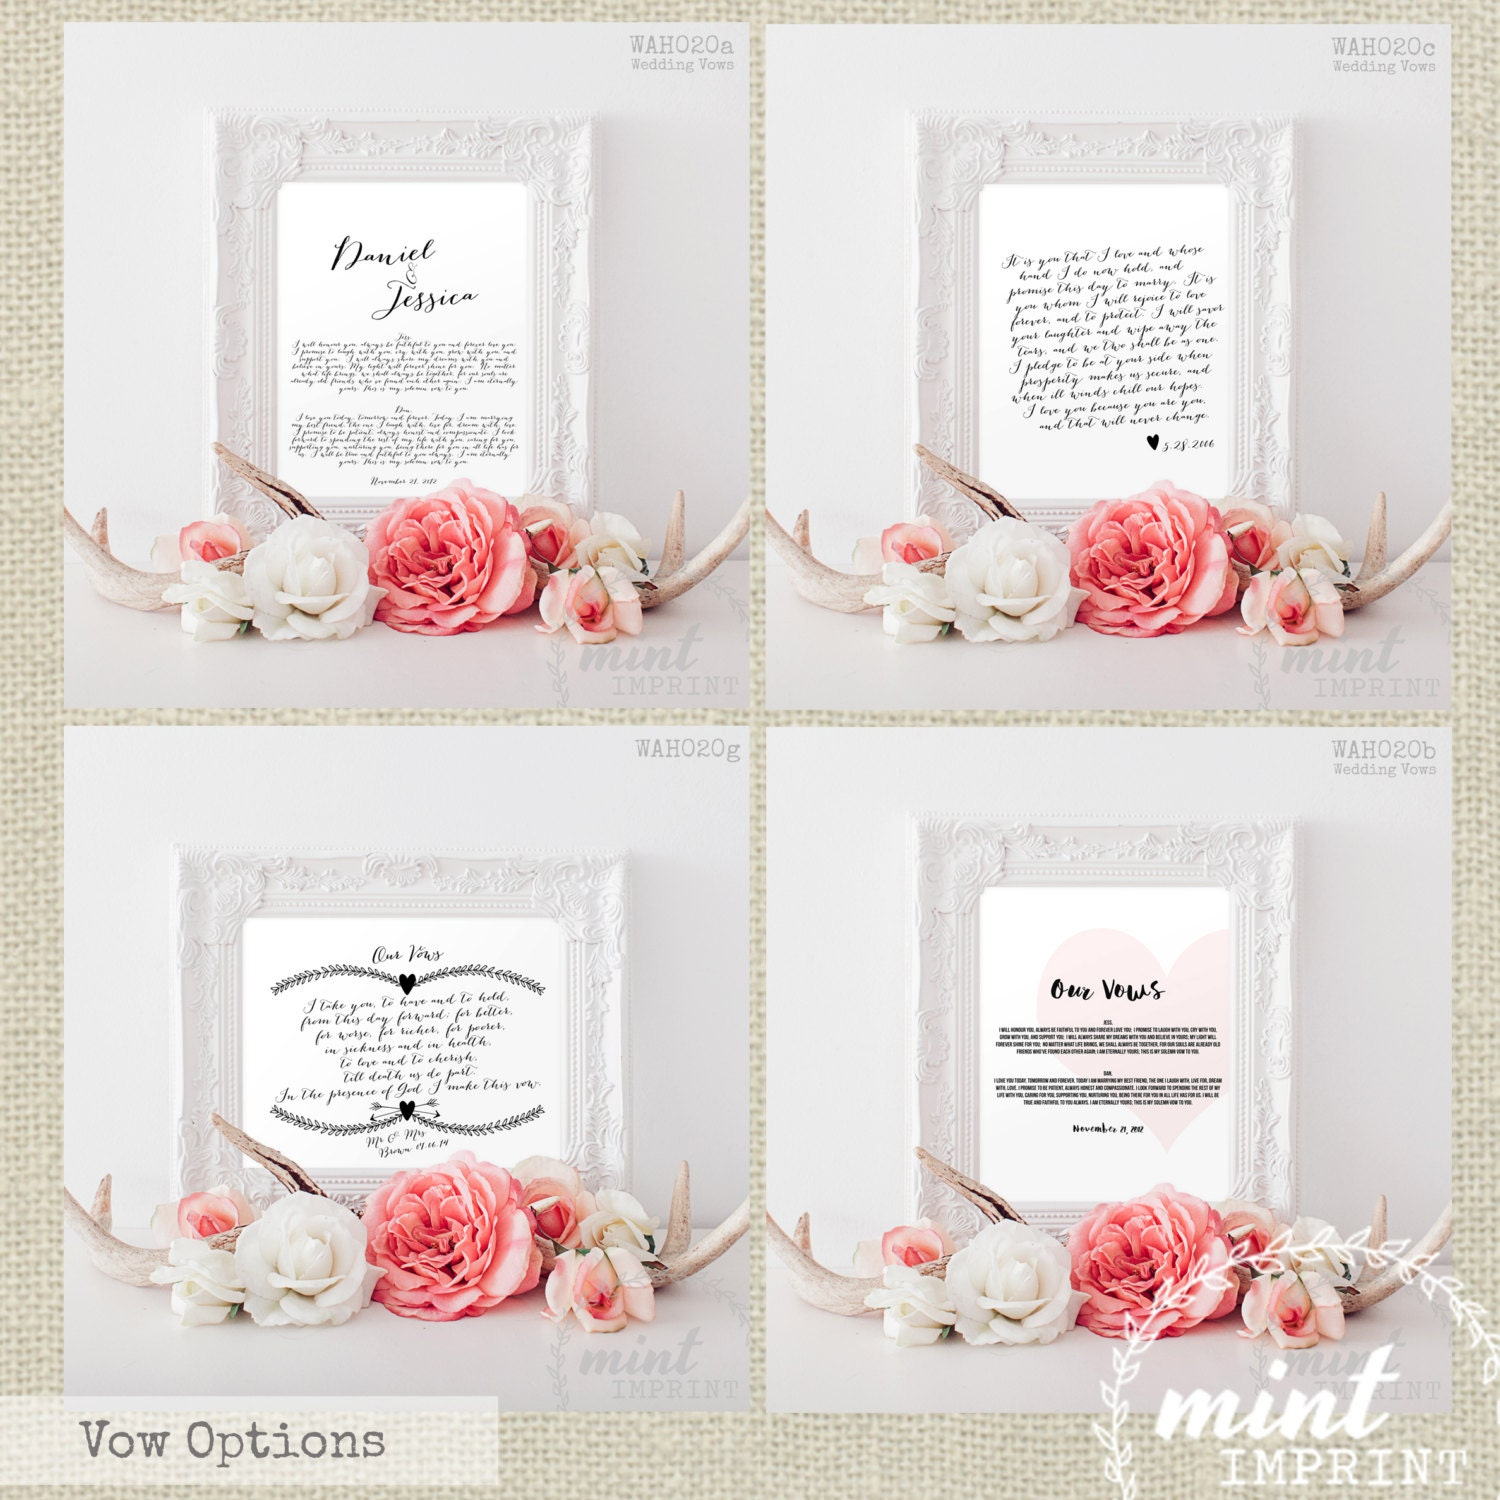 Wedding Vow Ideas For Groom: Wedding Vows Print / Bride And Groom Wedding Vows By